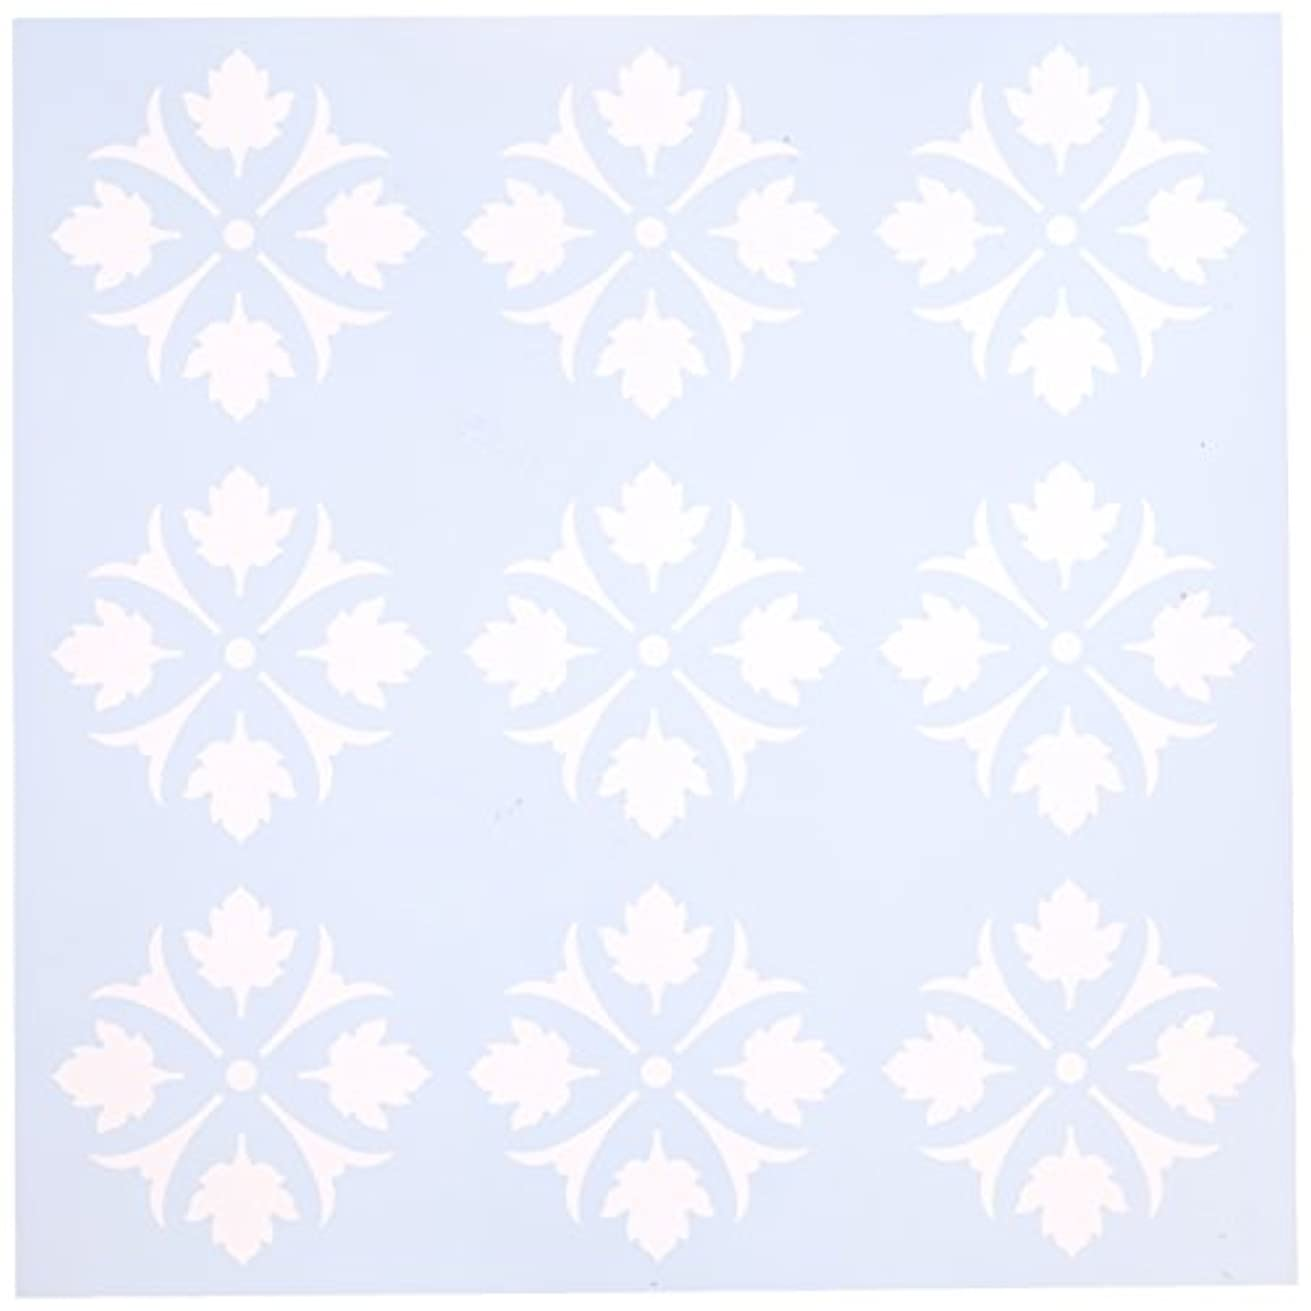 CLEARSNAP Clear Scraps Celtic Pattern Stencils, 12 by 12